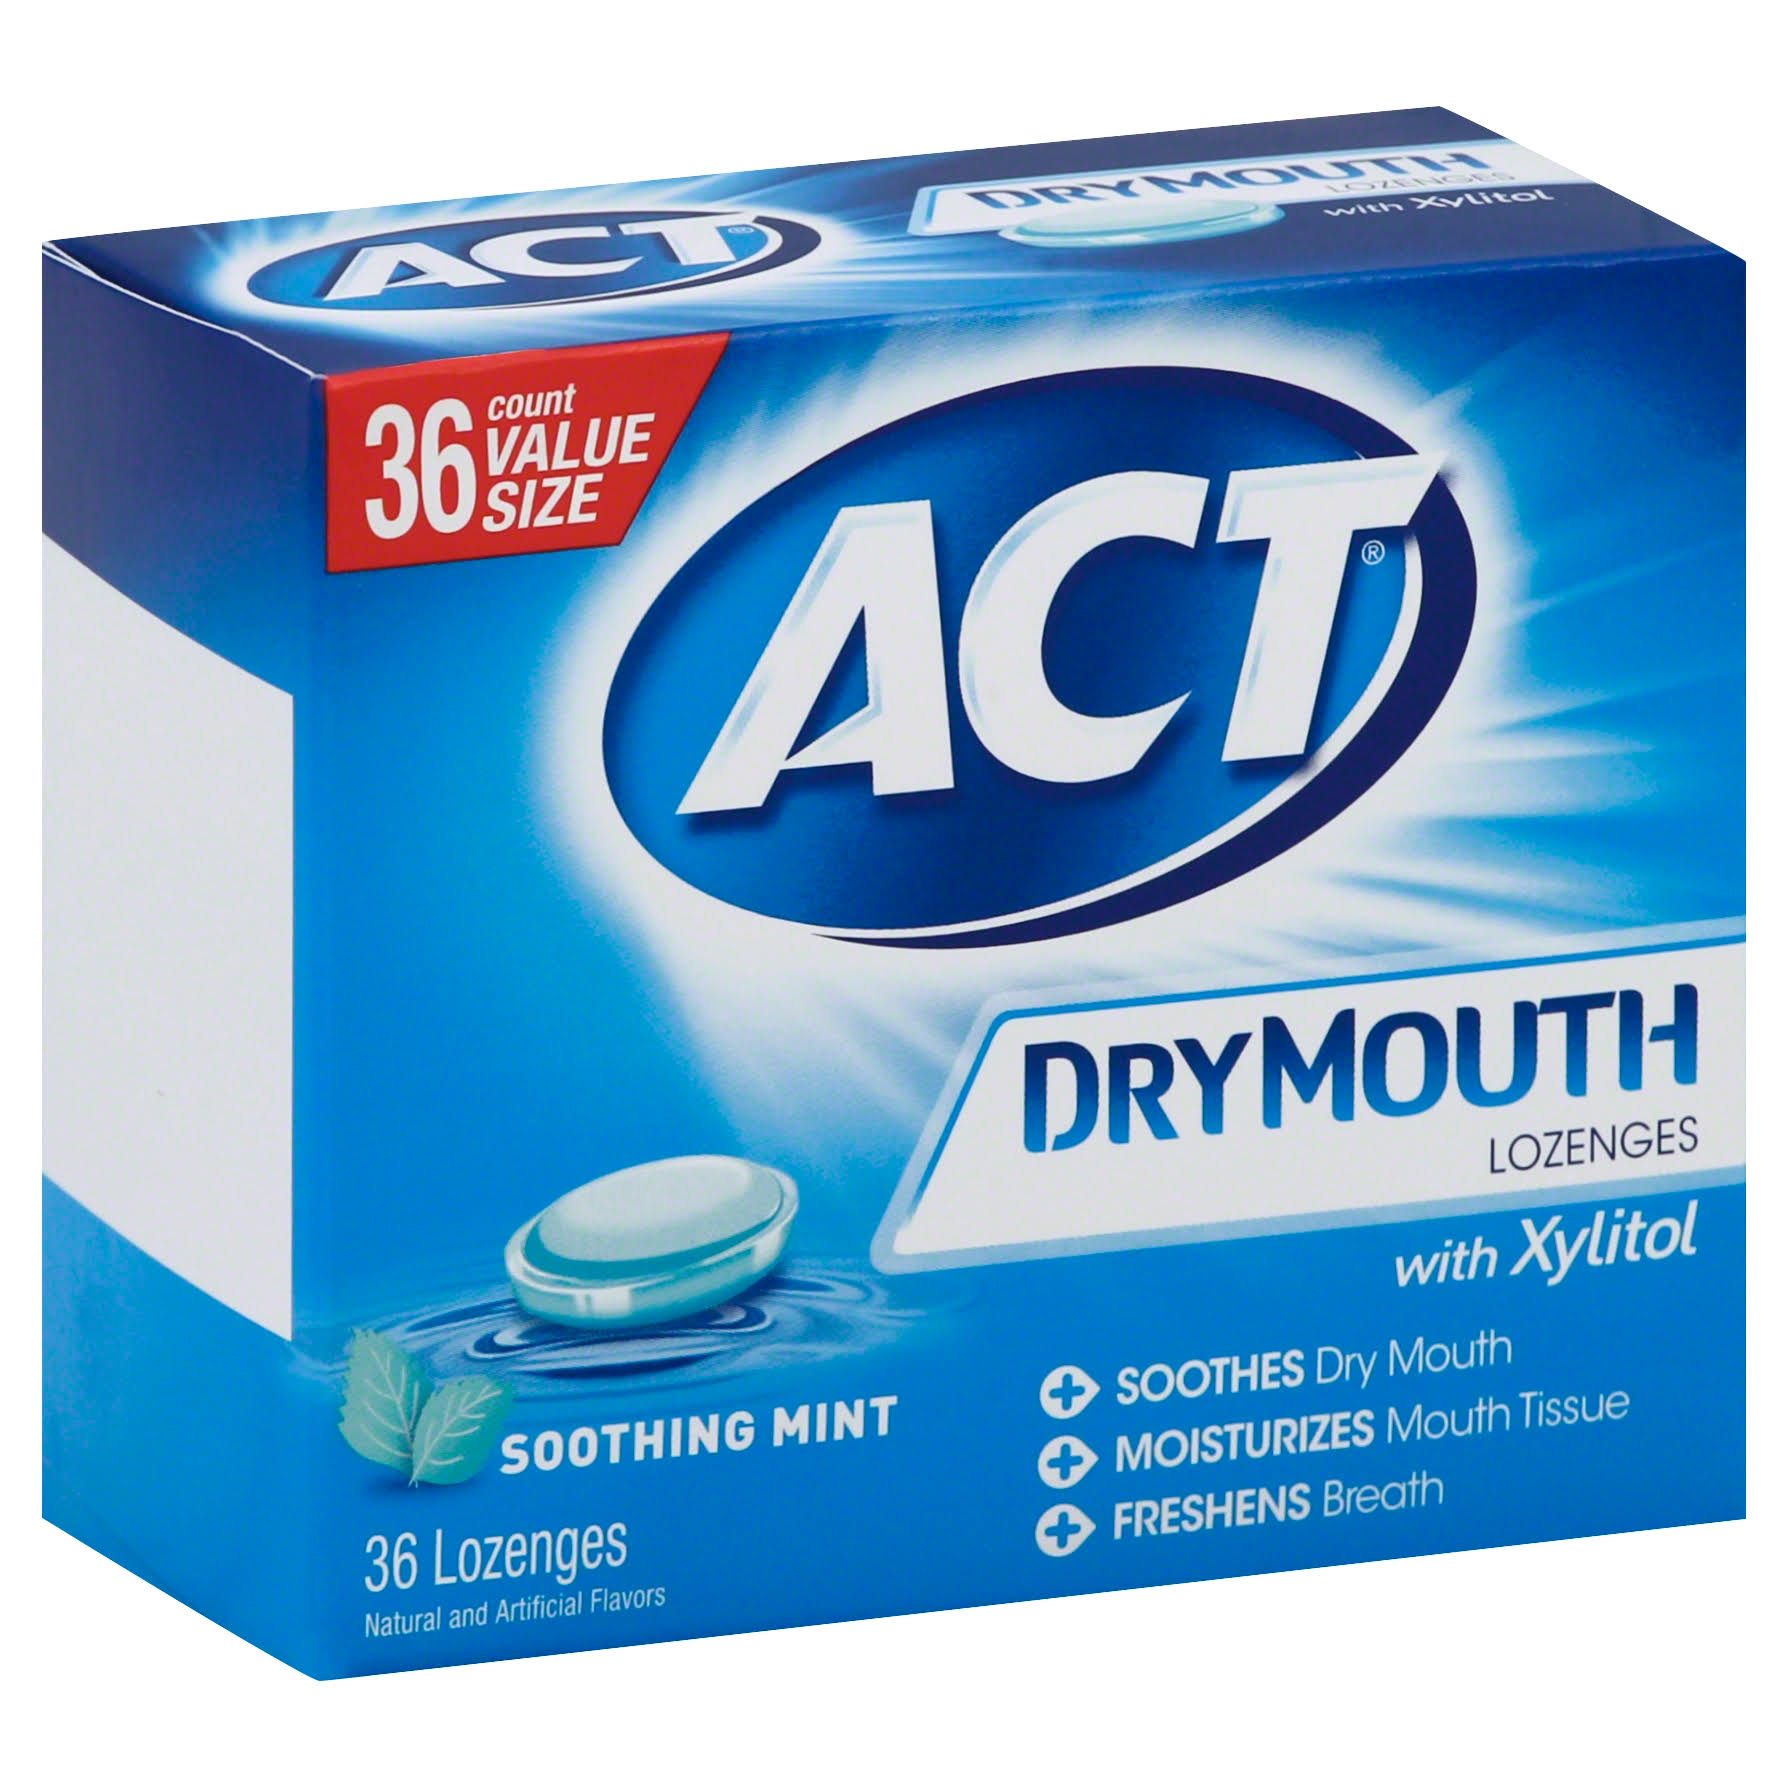 Act Dry Mouth Soothing Mint Lozenges with Xylitol - 36ct